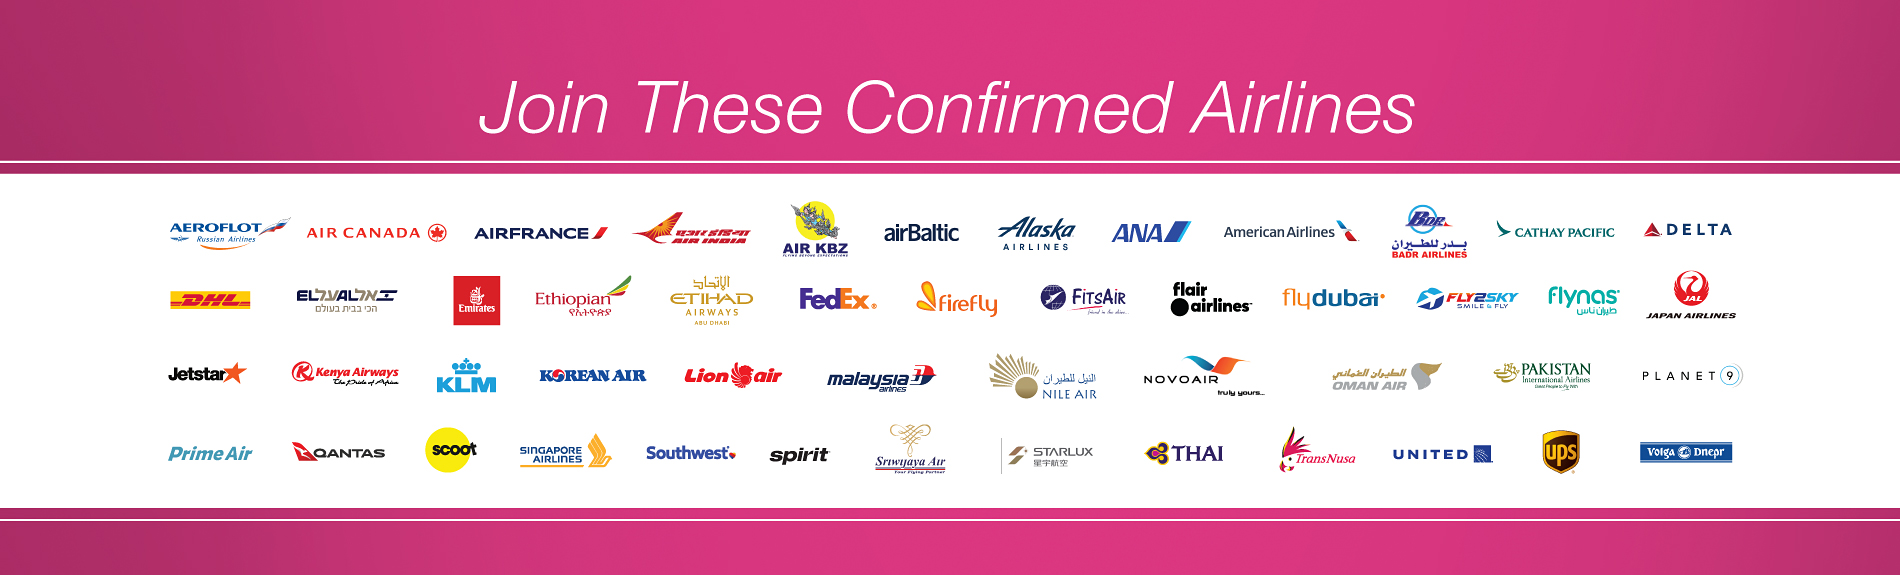 These airlines will be in attendance